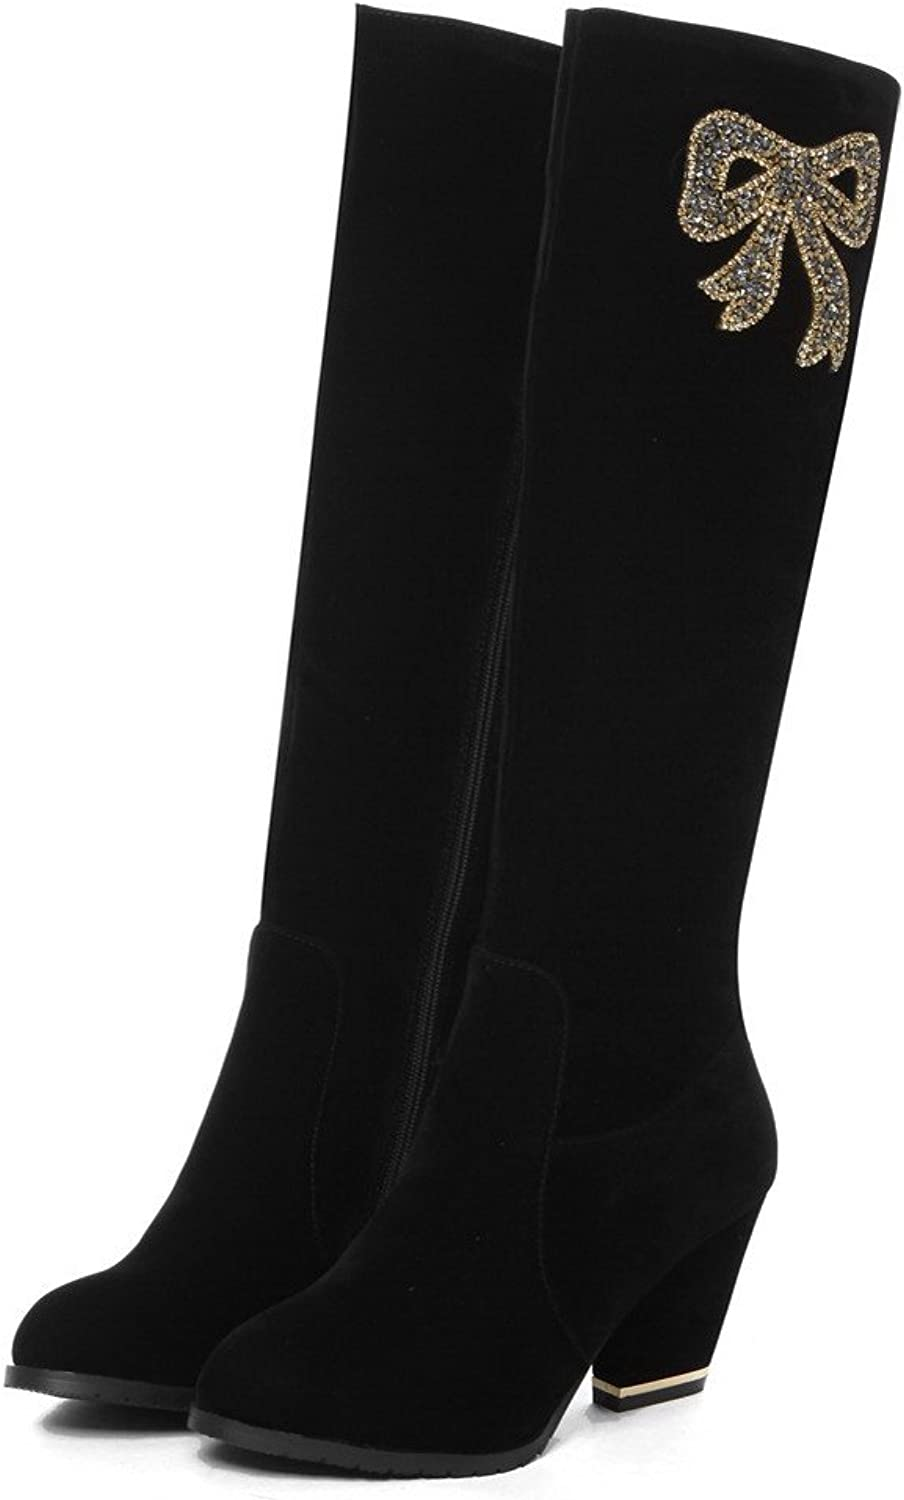 WeiPoot Womens Closed Round Toe High Heels Imitated Suede Frosted Solid Boots with Glass Diamond